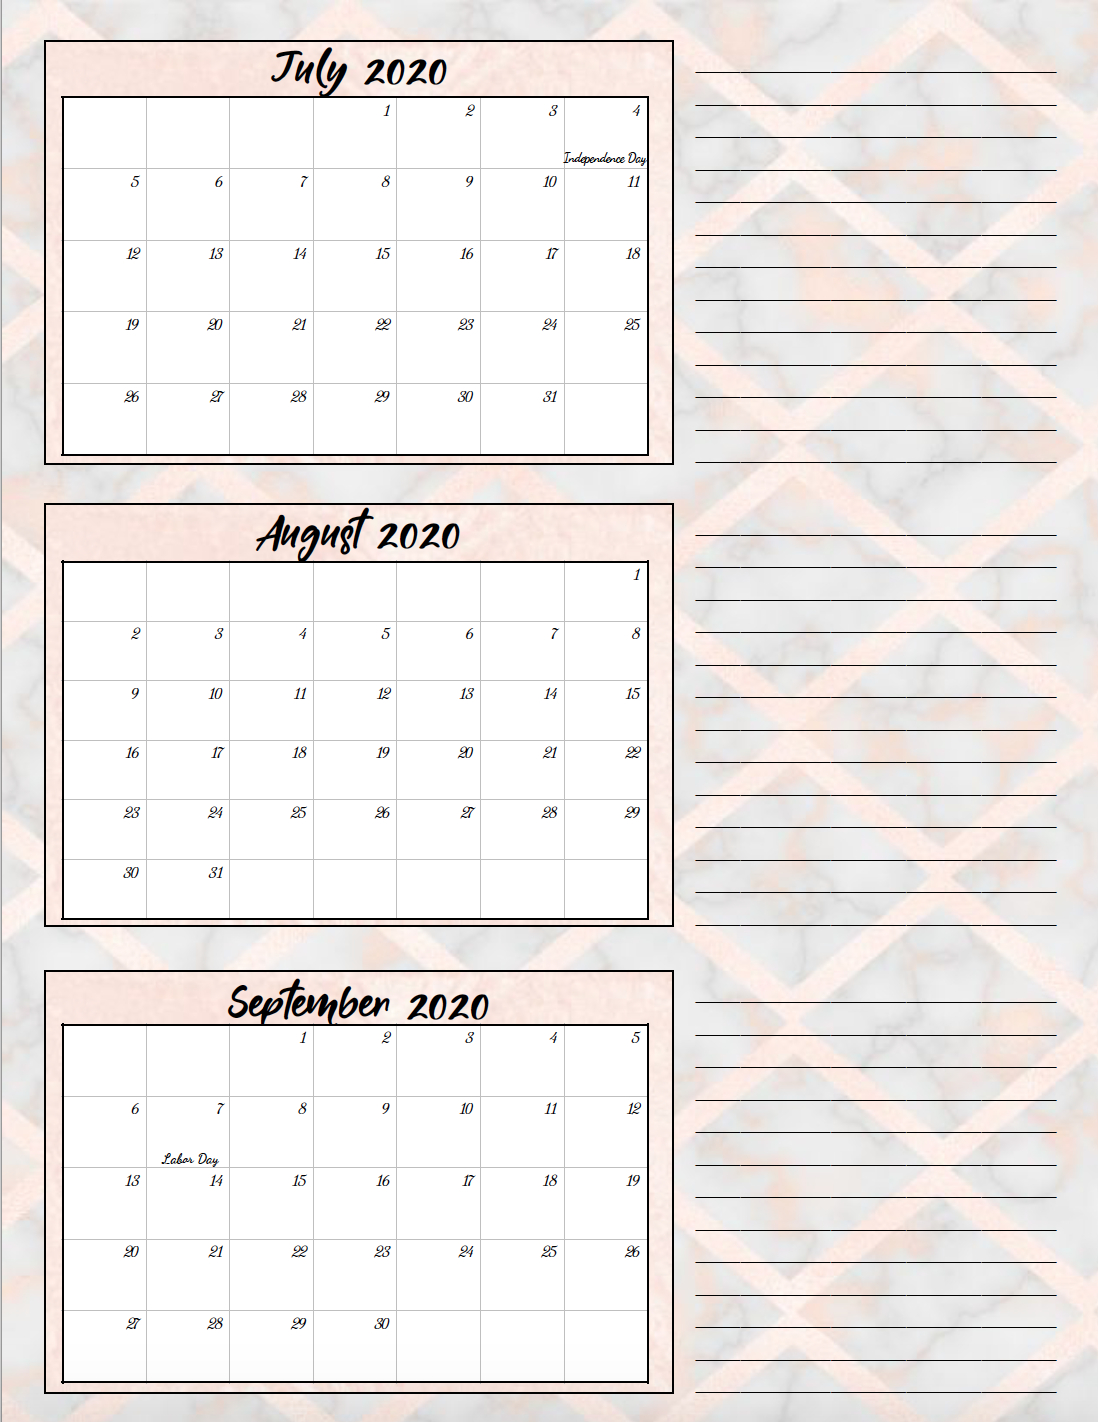 Free Printable 2020 Quarterly Calendars With Holidays: 3 within Quarterly Calendar 2020 Excel